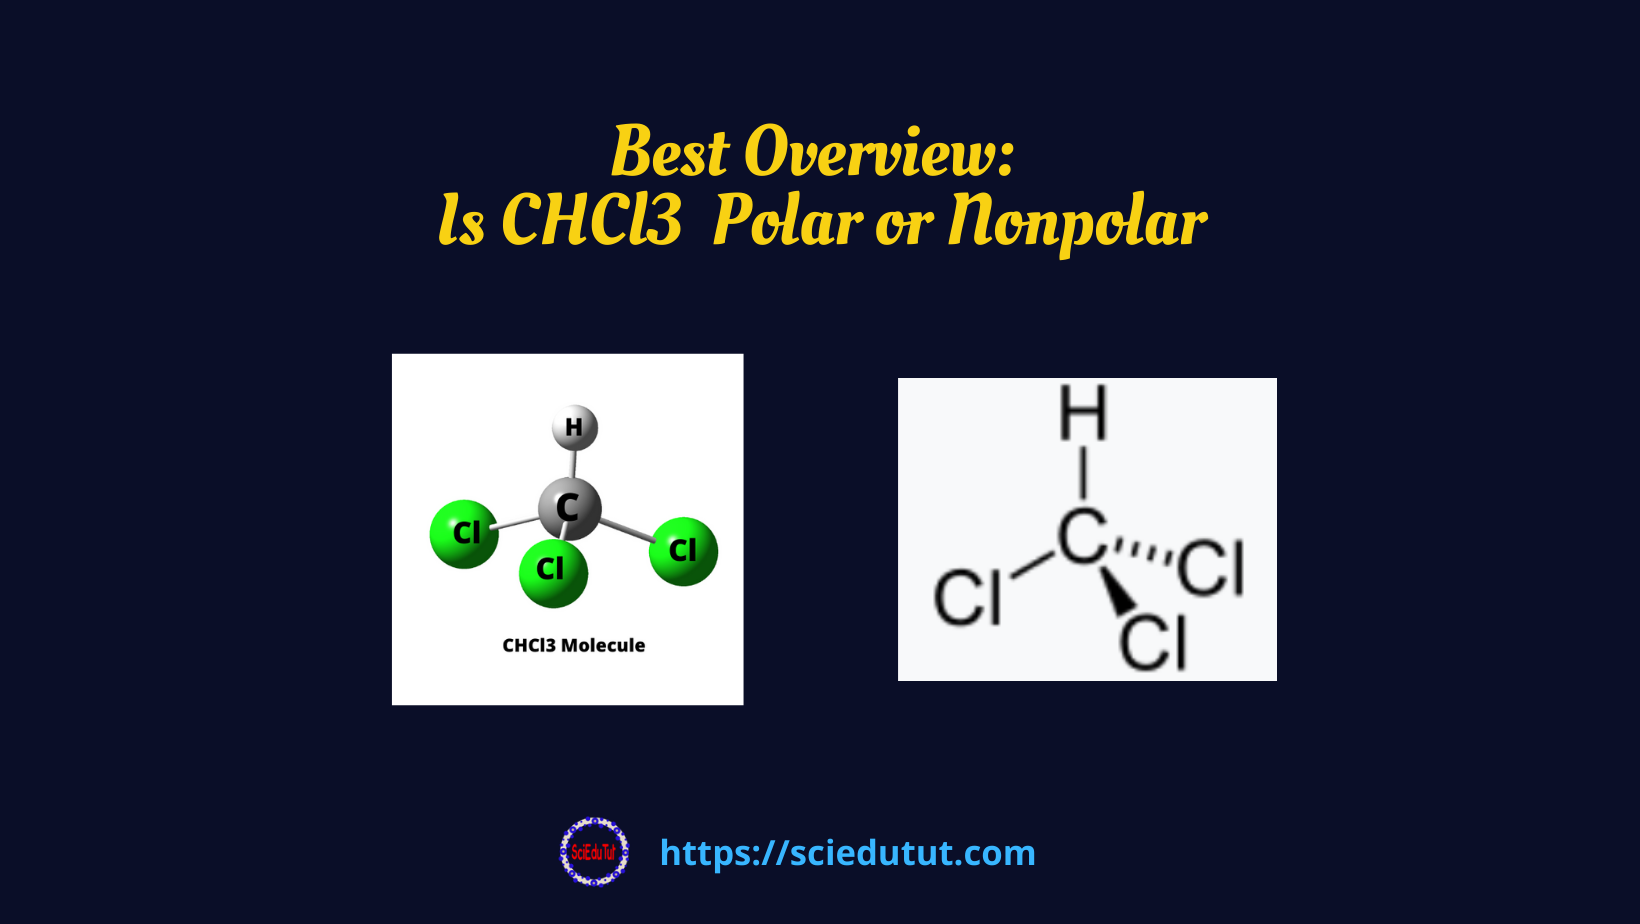 Best Overview: Is CHCl3 Polar or Nonpolar